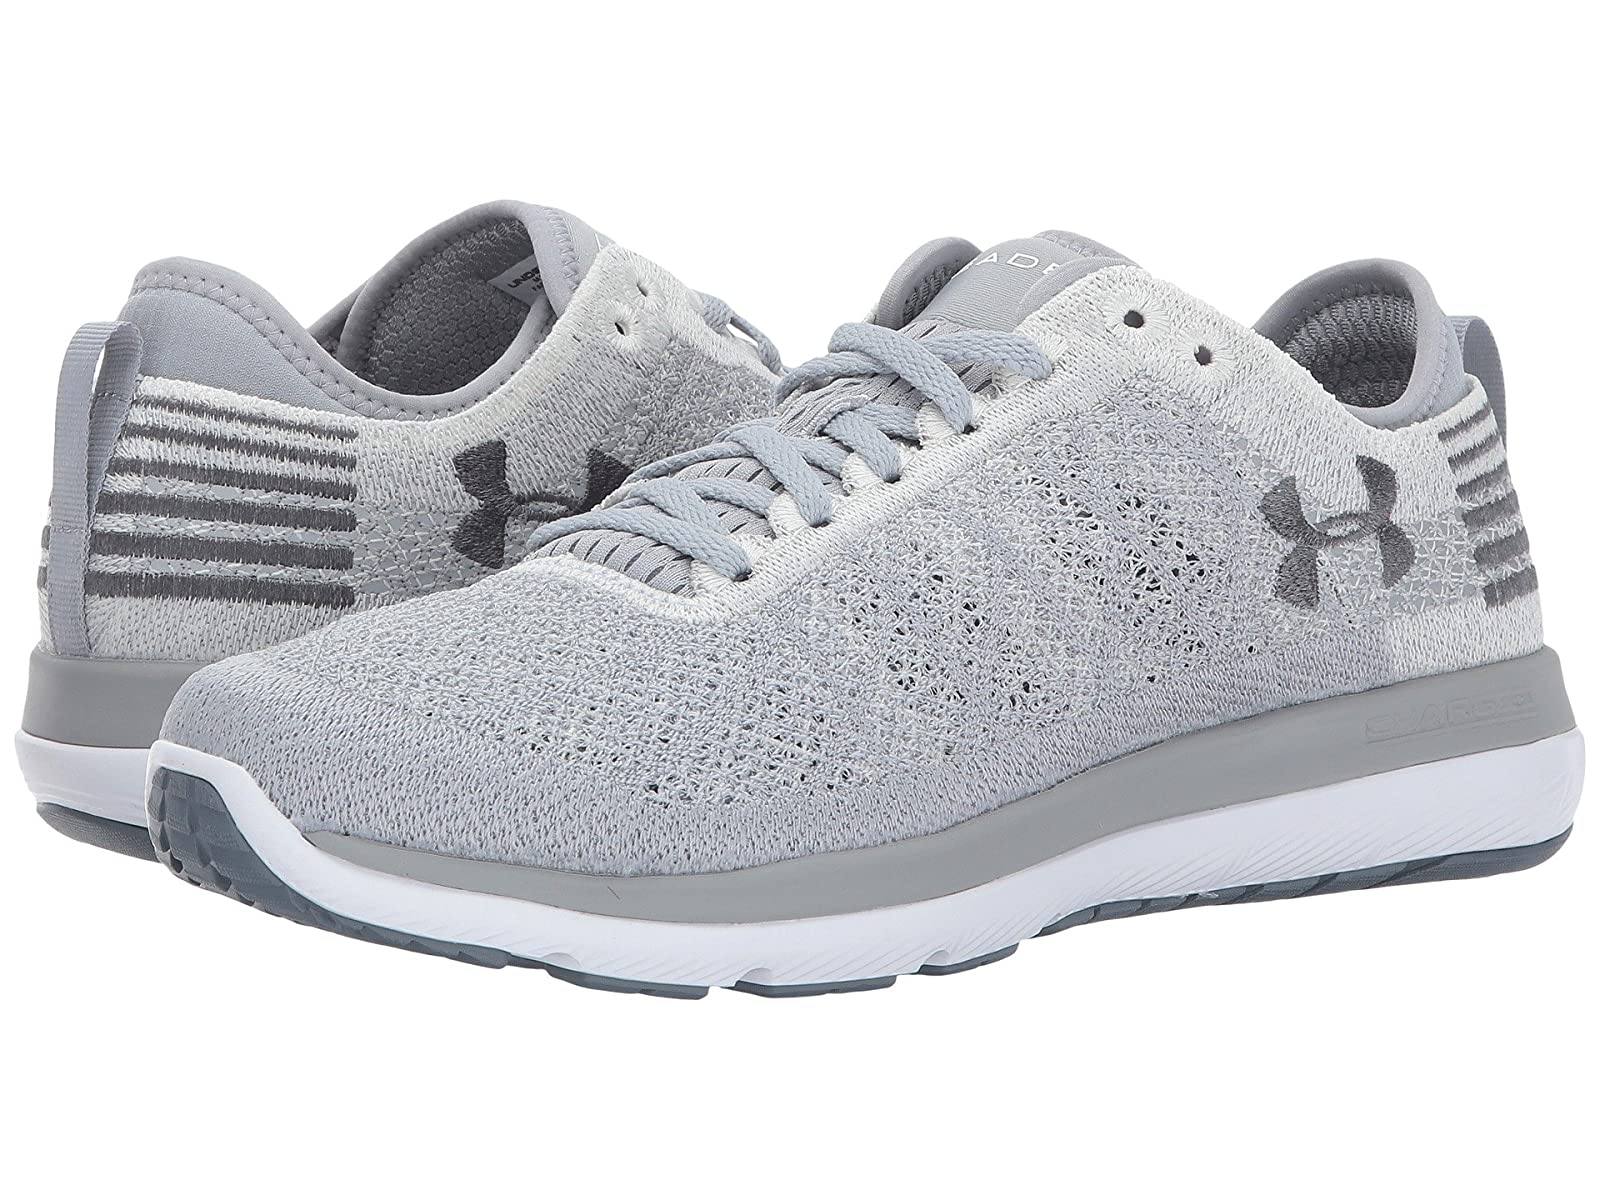 Under Armour Threadborne Fortis 3Atmospheric grades have affordable shoes